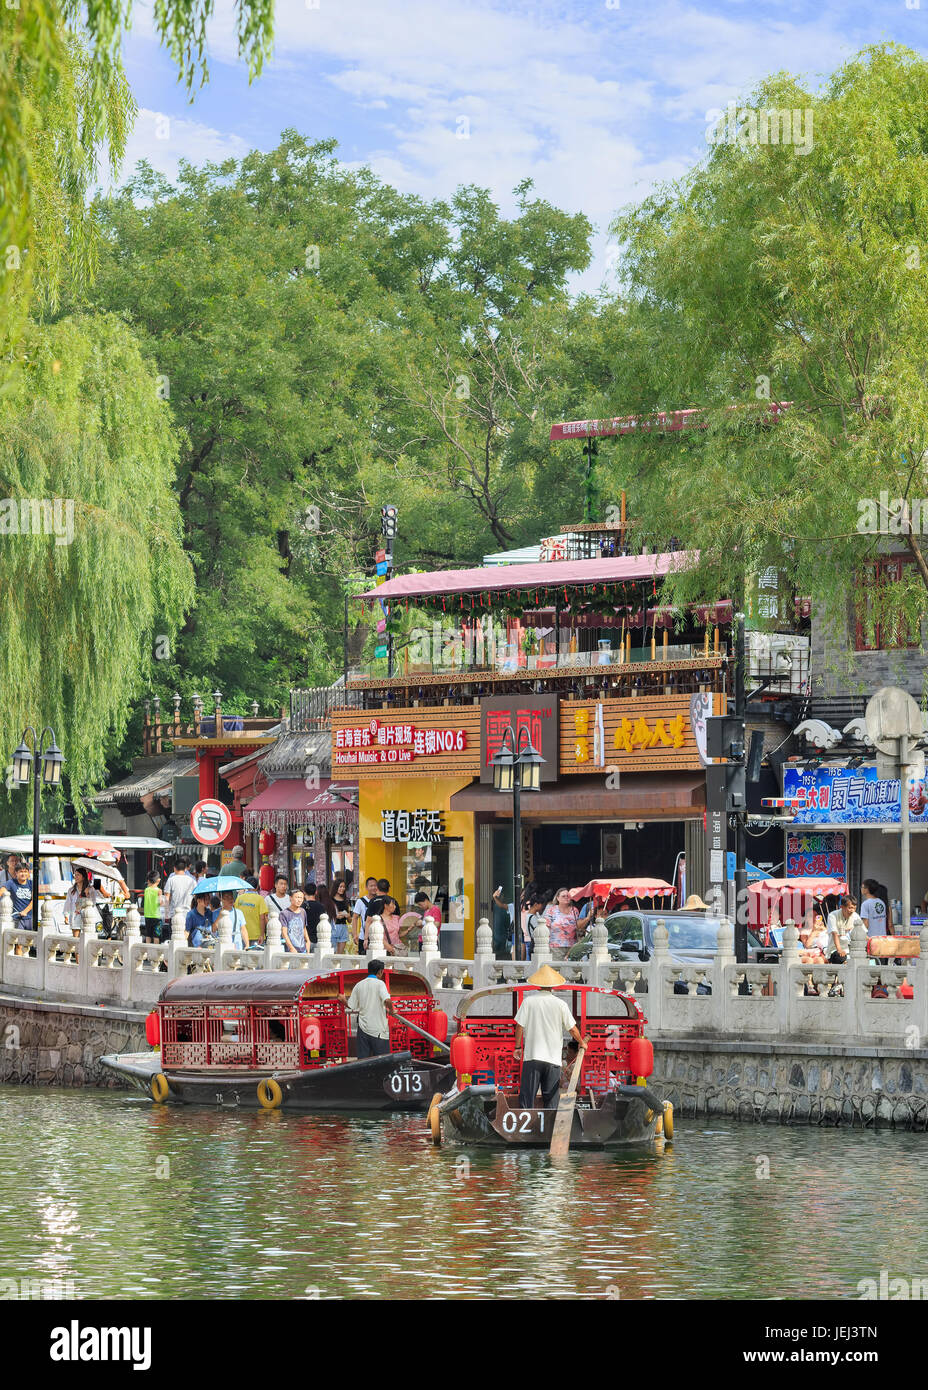 BEIJING-AUGUST 14, 2016. Houhai area during tourist season. It is very popular among foreign tourists visiting Beijing - Stock Image